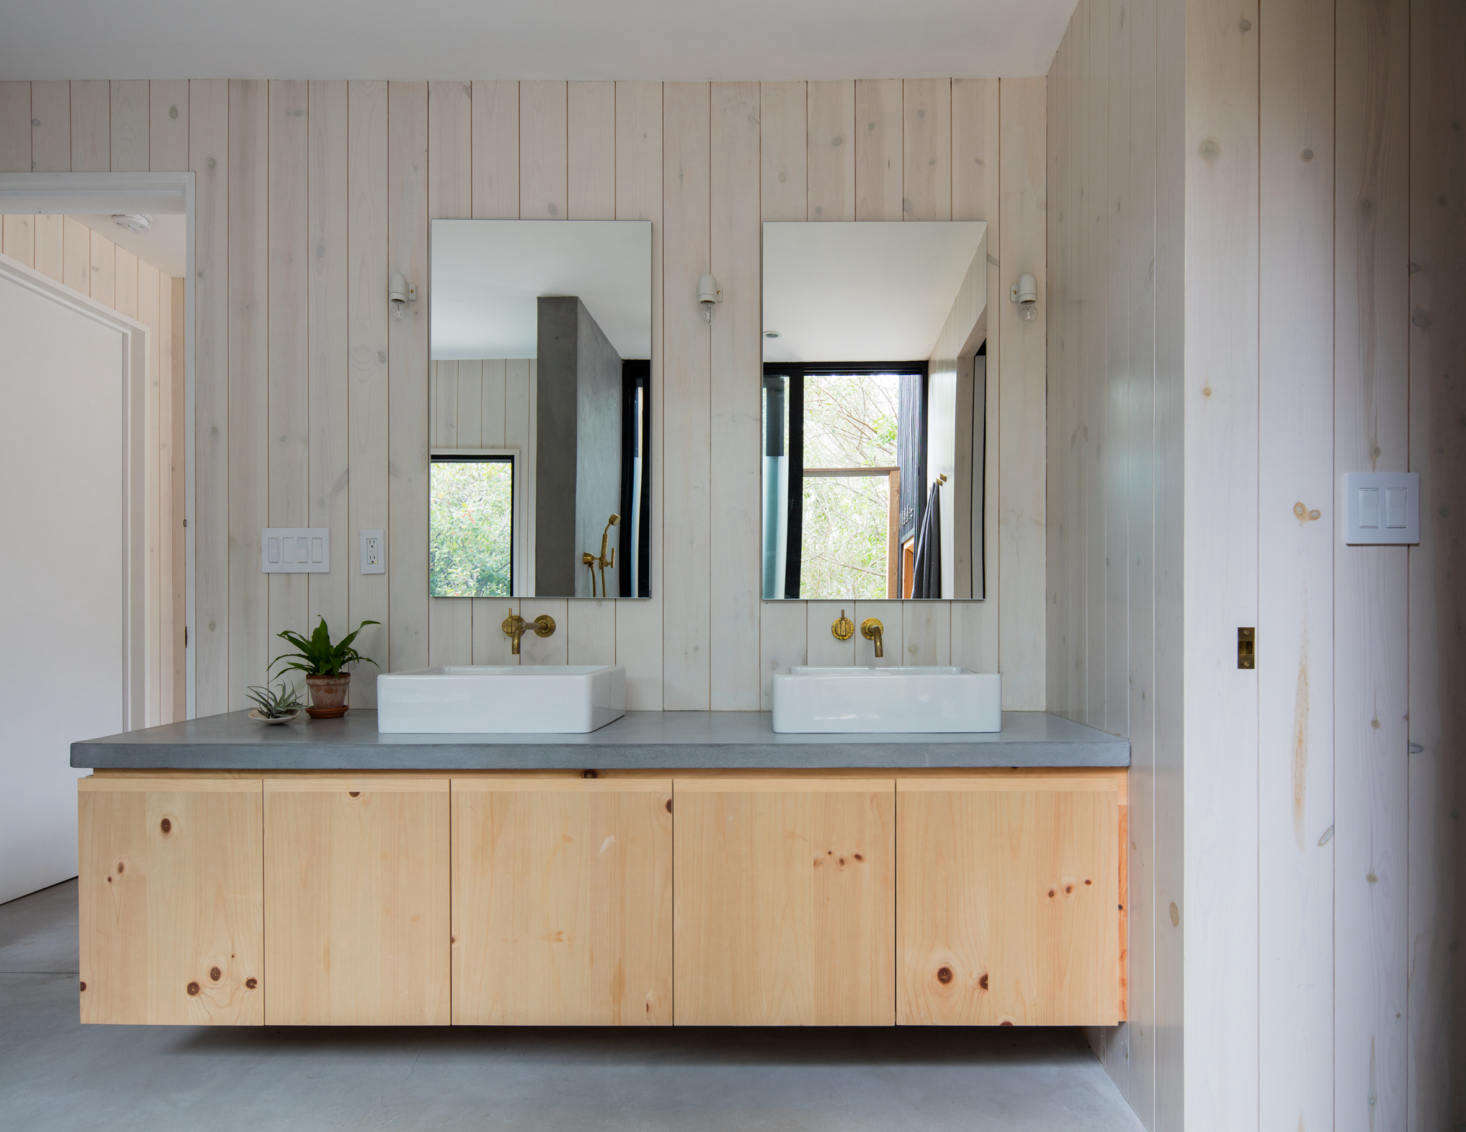 There is one full bath in the house, shared by the family, a decision made early on to maximize living space. The vanity has cabinets of heart pine wood in a clear stain. &#8